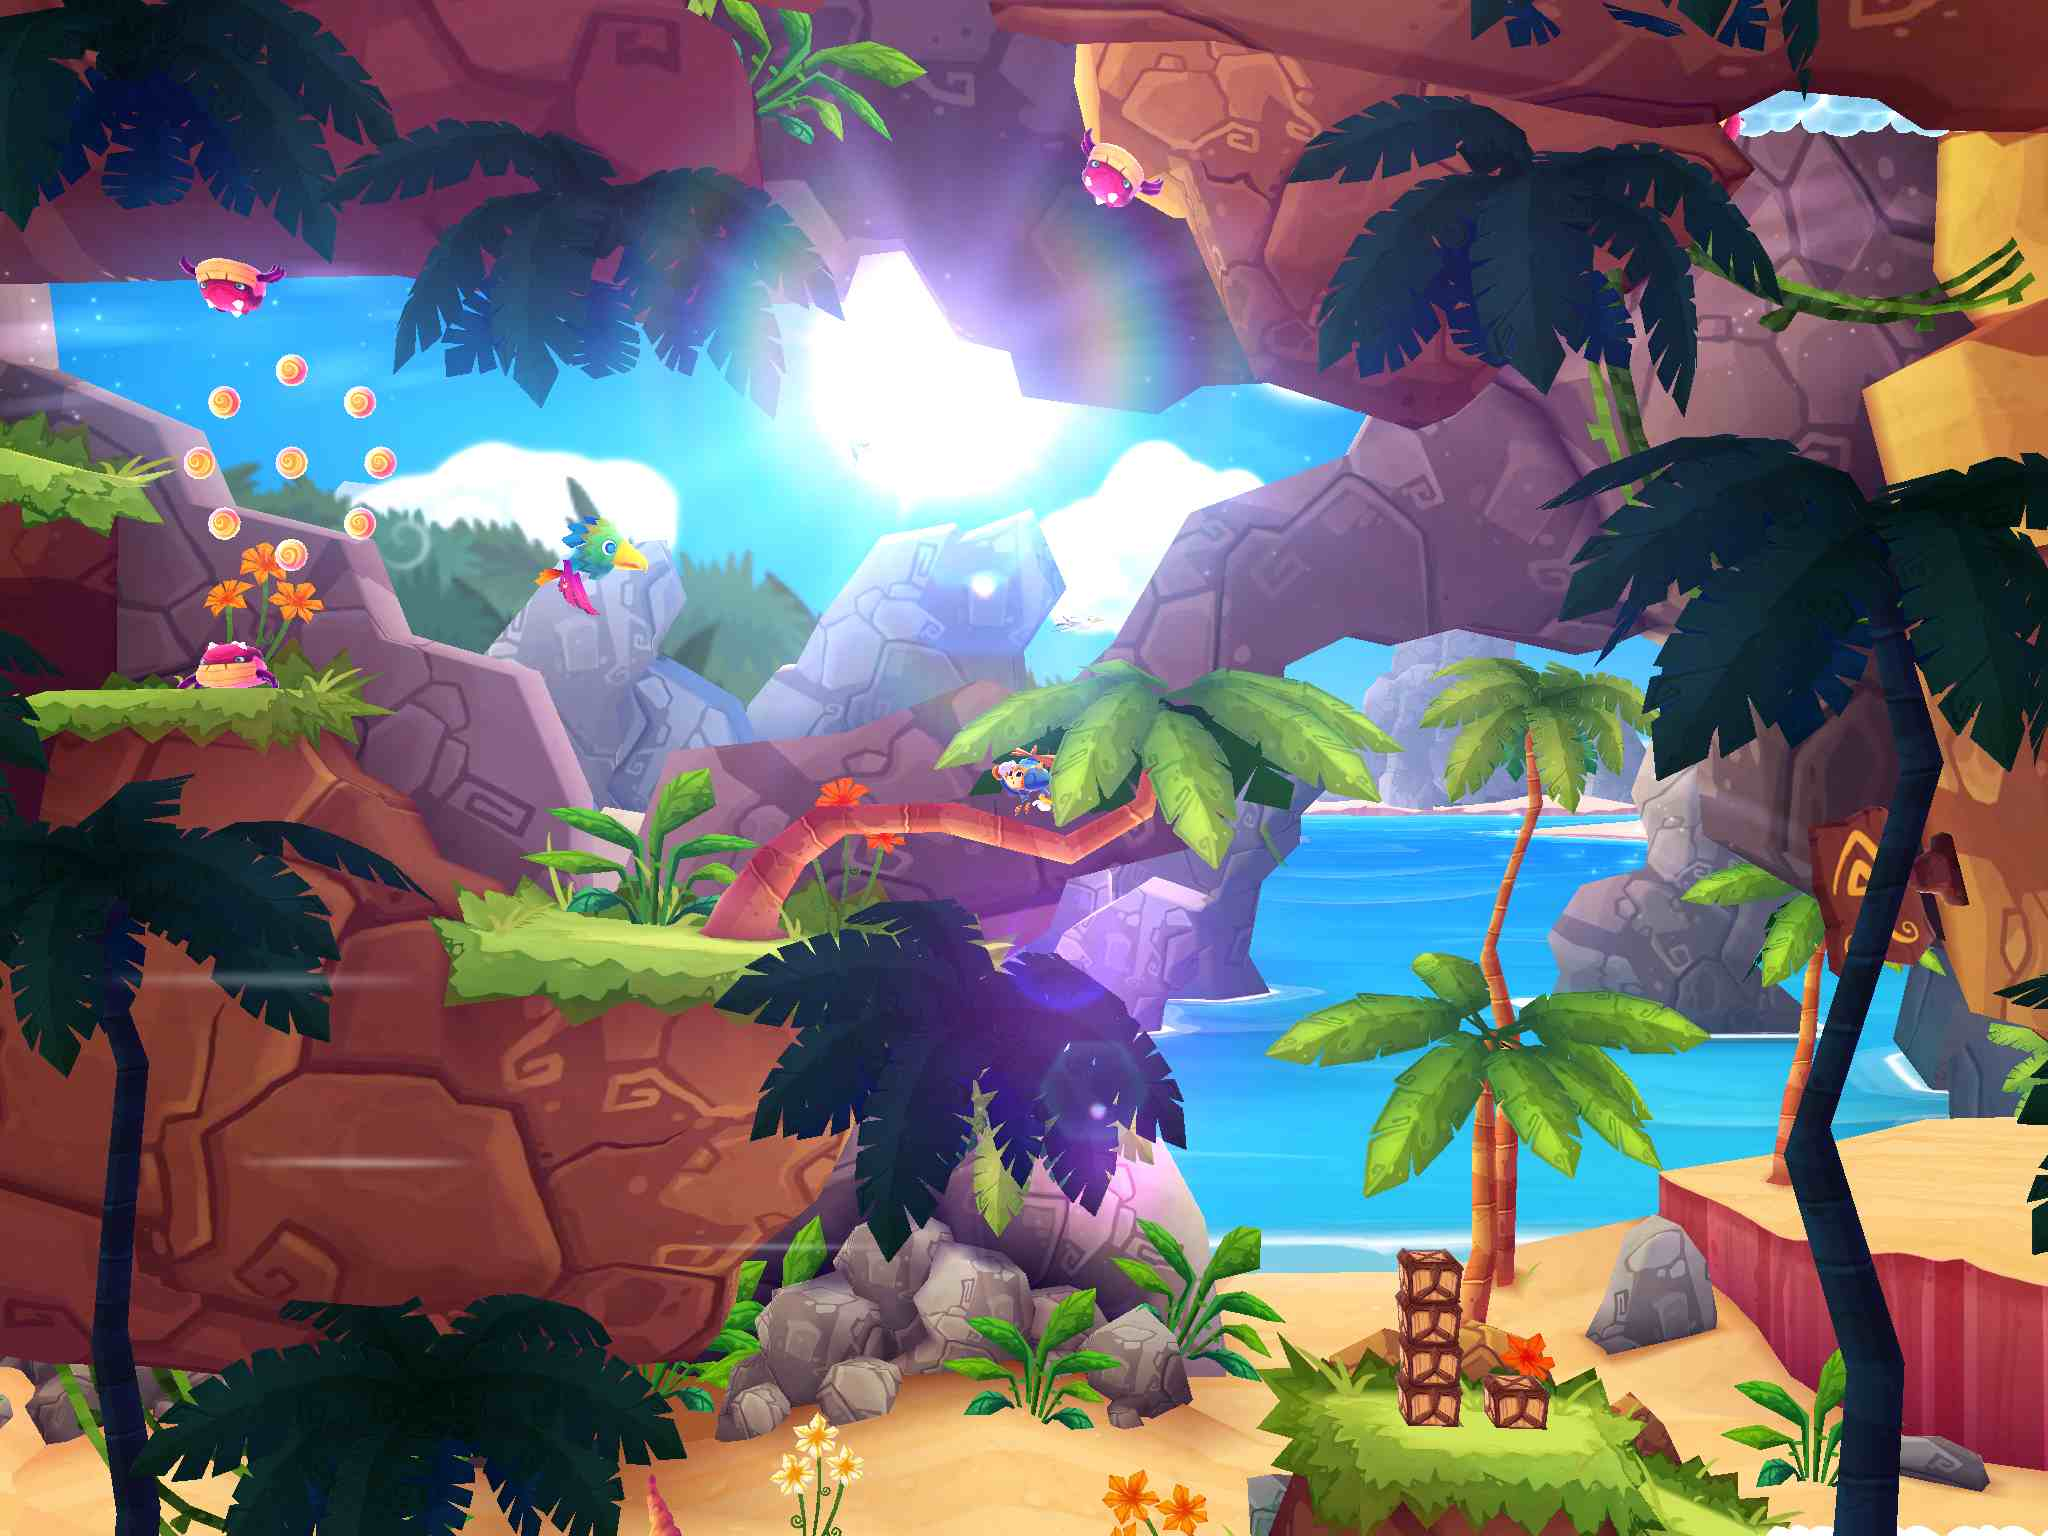 Sega's propeller platformer Heroki gets its first price drop on iOS, and it's a big one